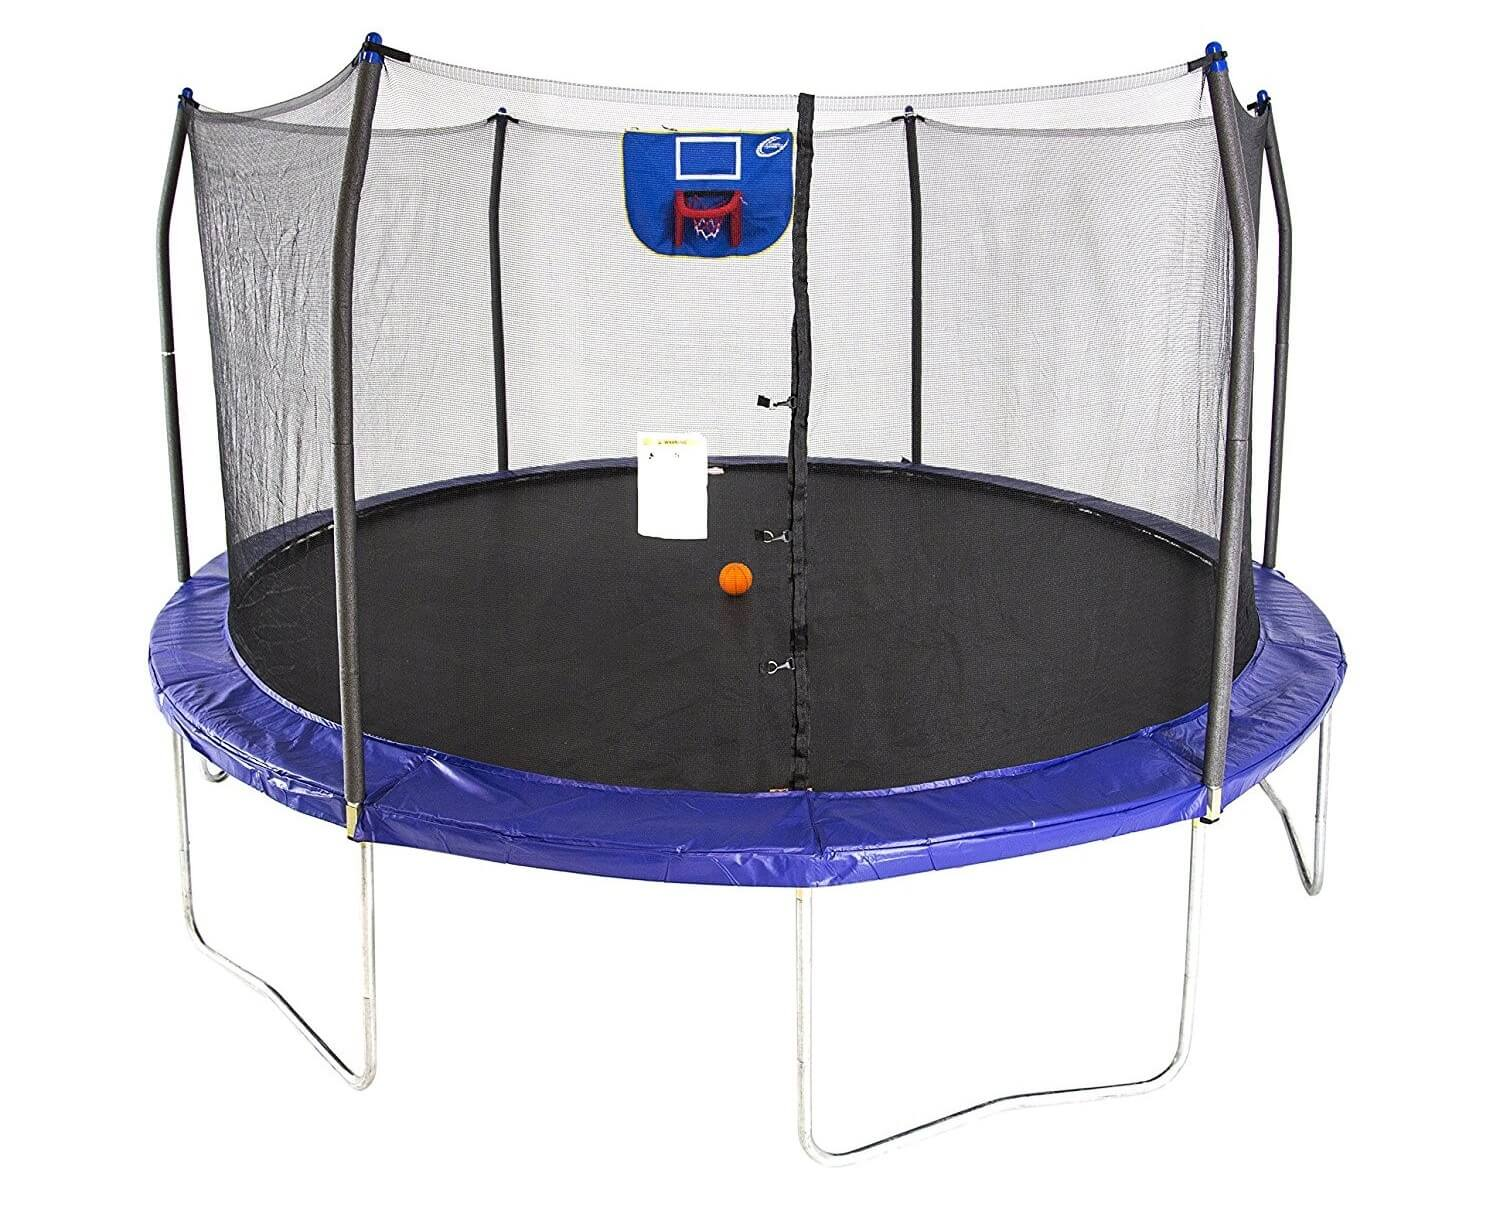 Skywalker 15 Ft. Jump N' Dunk with Safety Enclosure and Basketball Hoop